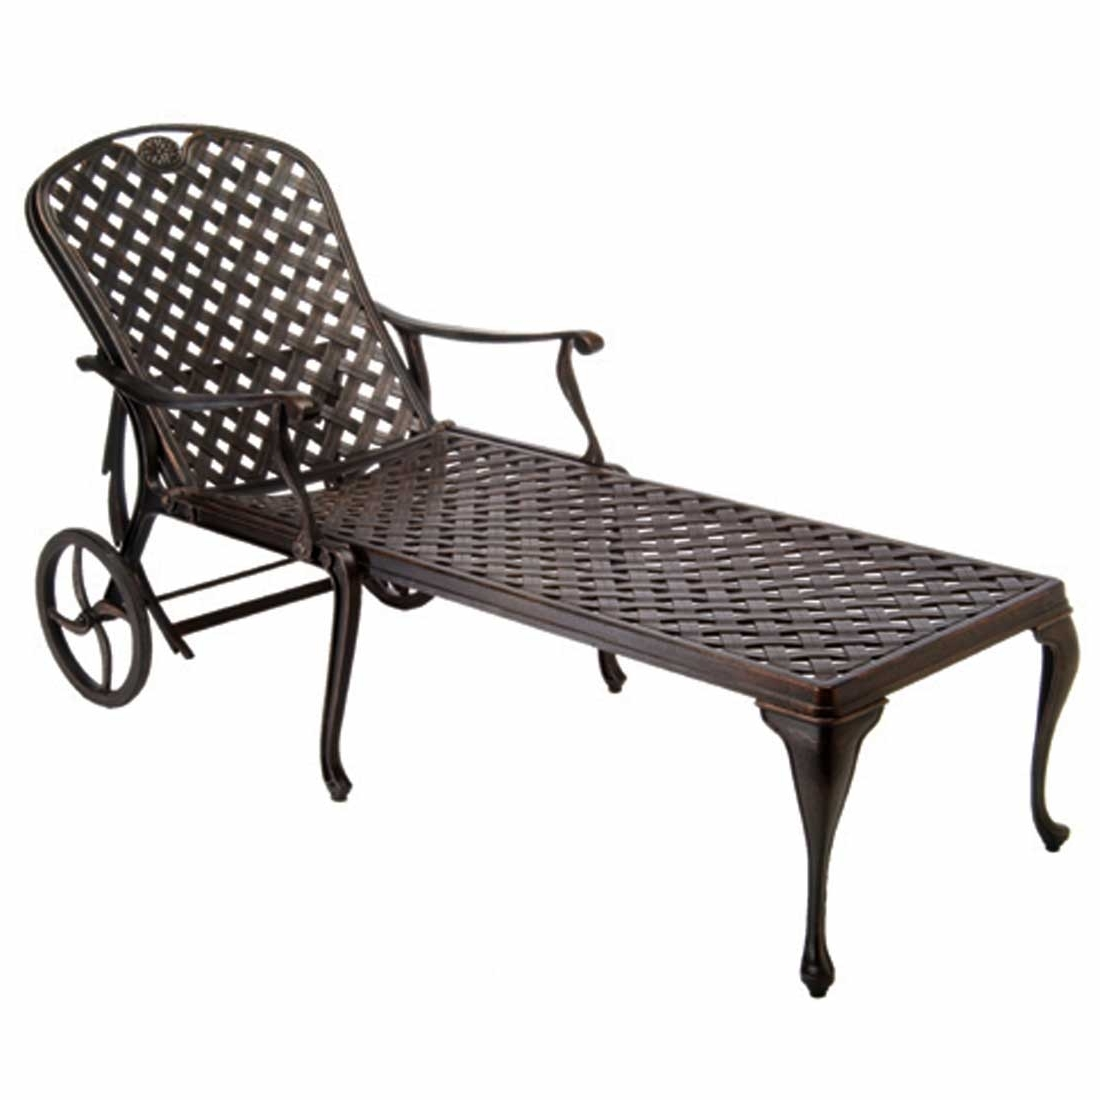 Well Known Provance Metal Chaise Lounge Chairs In Metal Chaise Lounge Chairs (View 11 of 15)